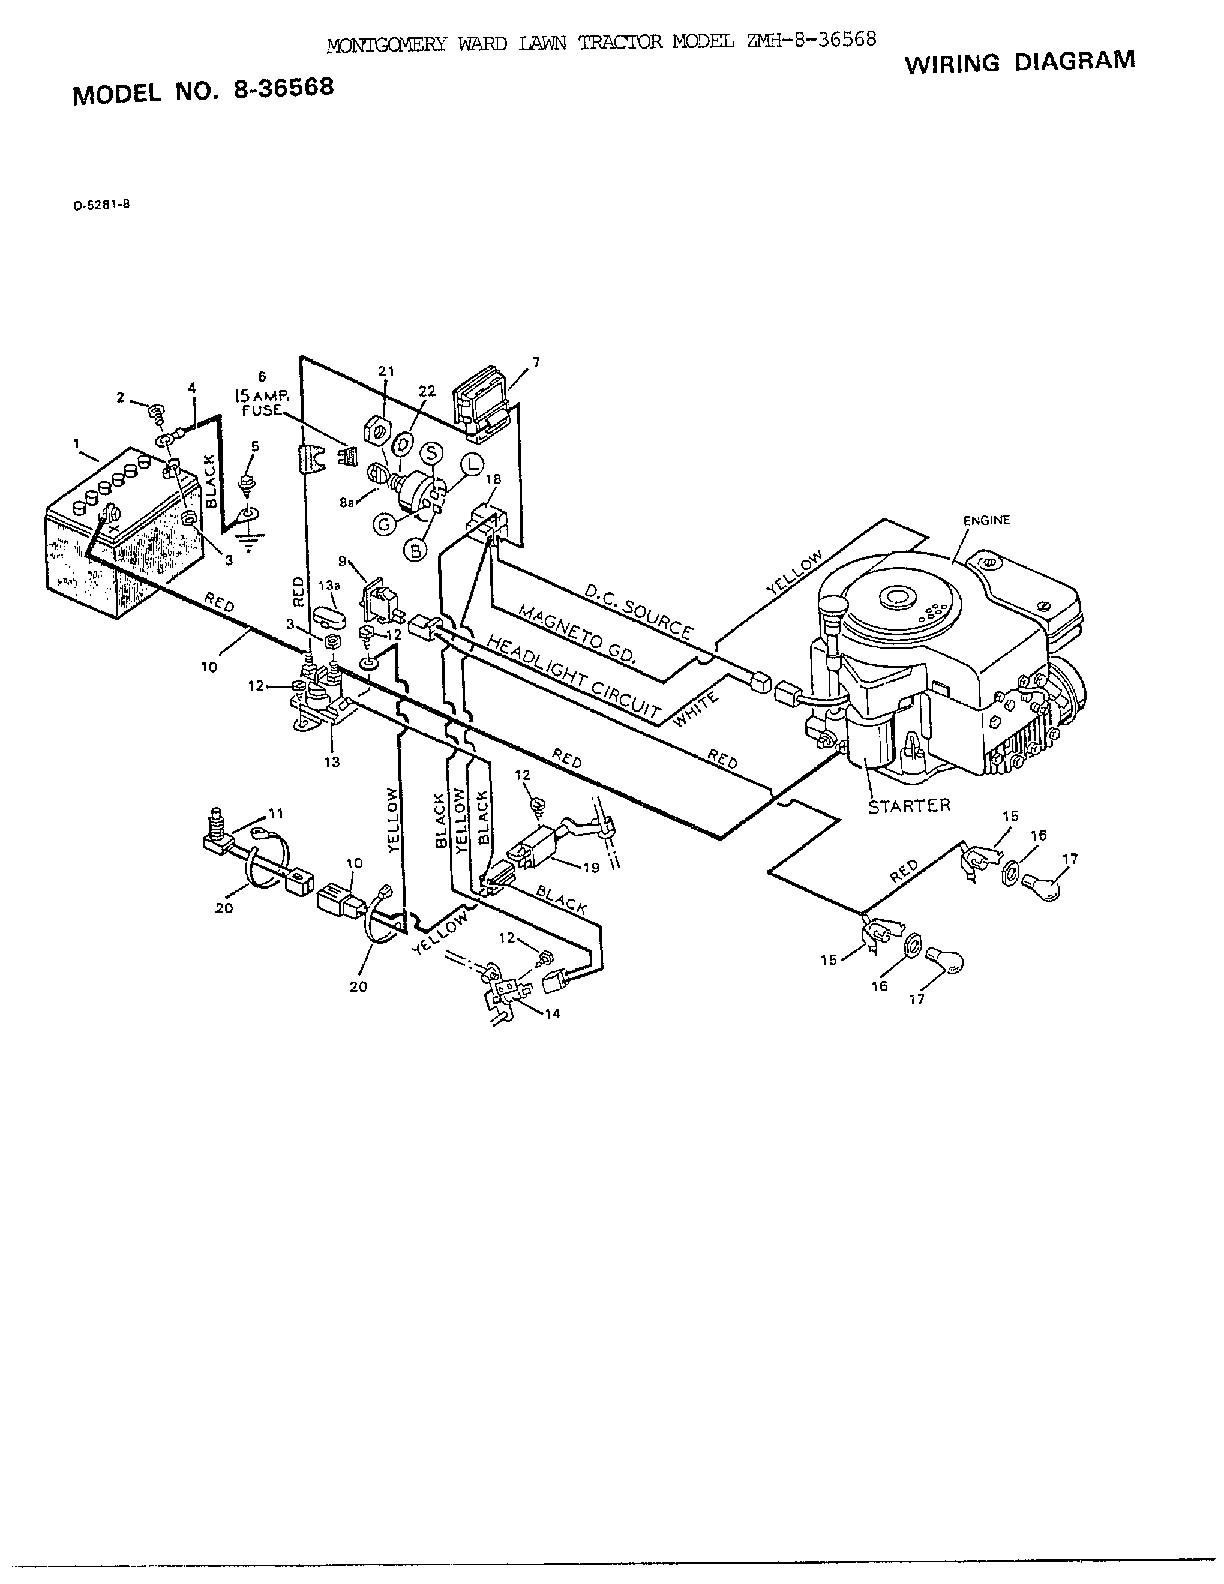 wiring diagram diagram and parts list for murray ridingmowertractor wiring diagram today [ 1224 x 1584 Pixel ]